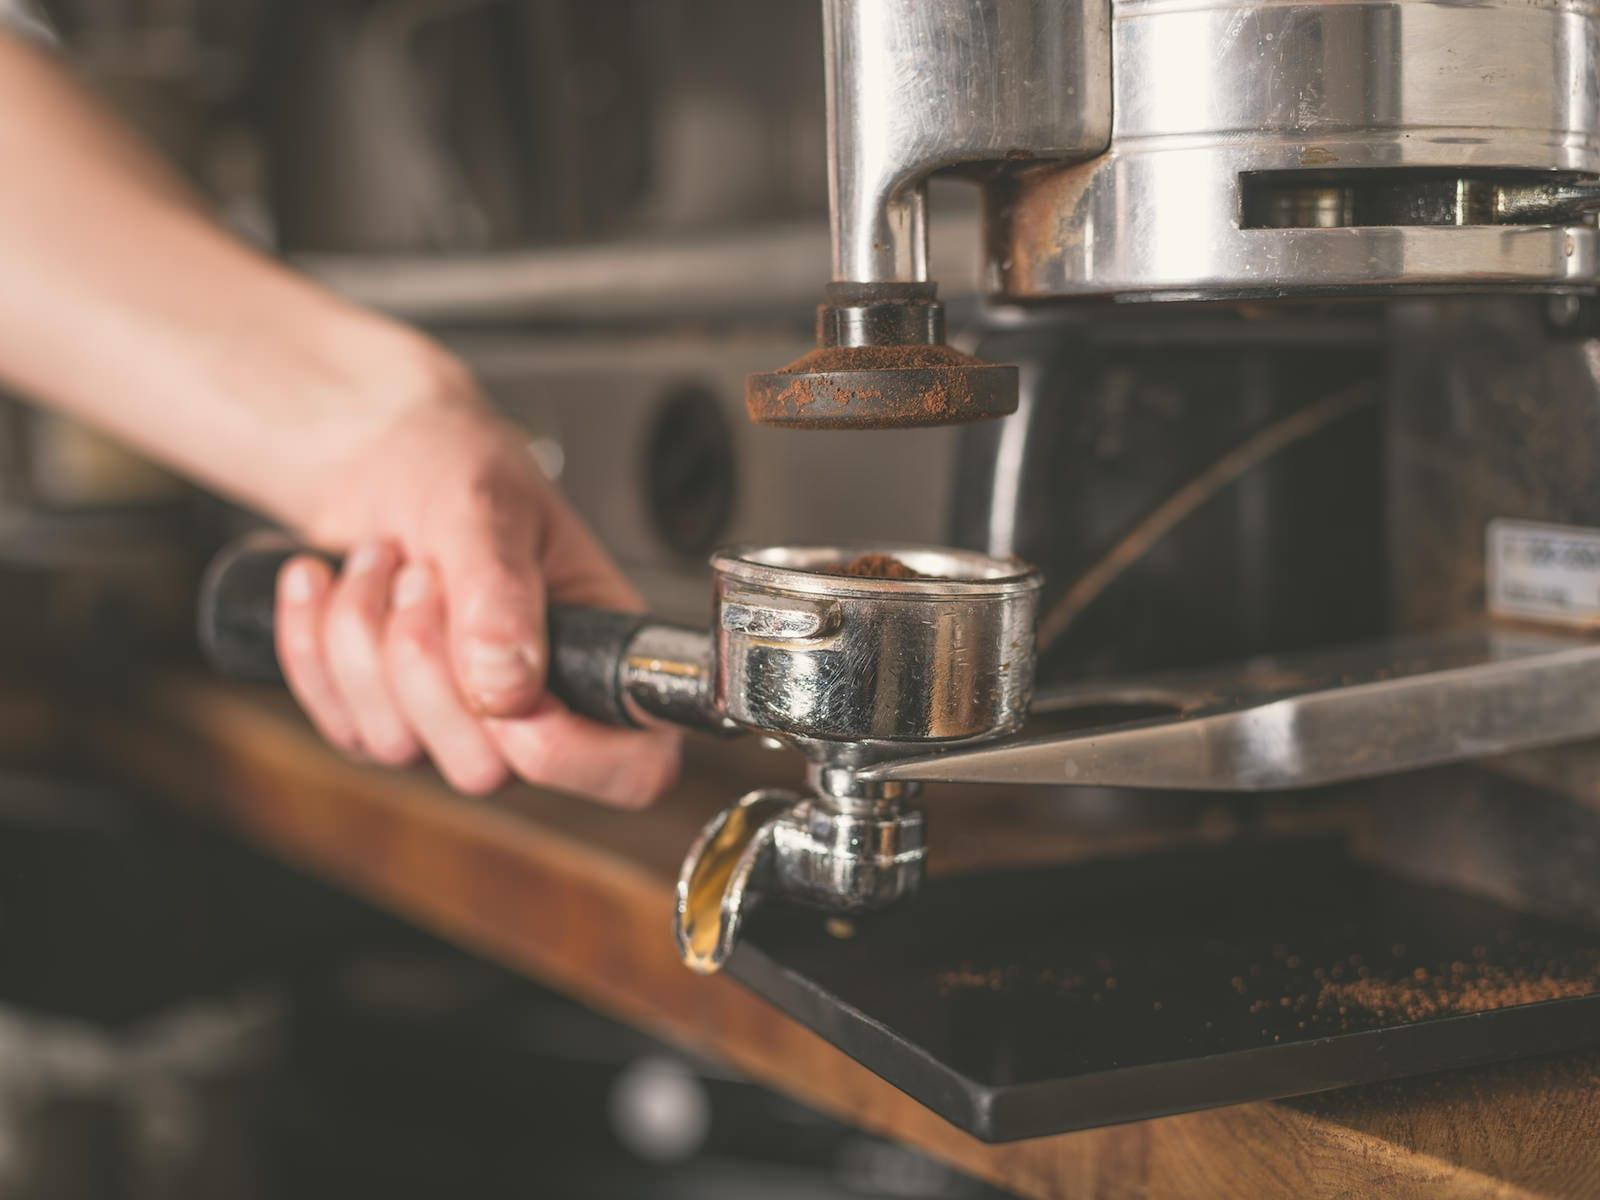 The hand of a young woman is operating a professional coffee machine